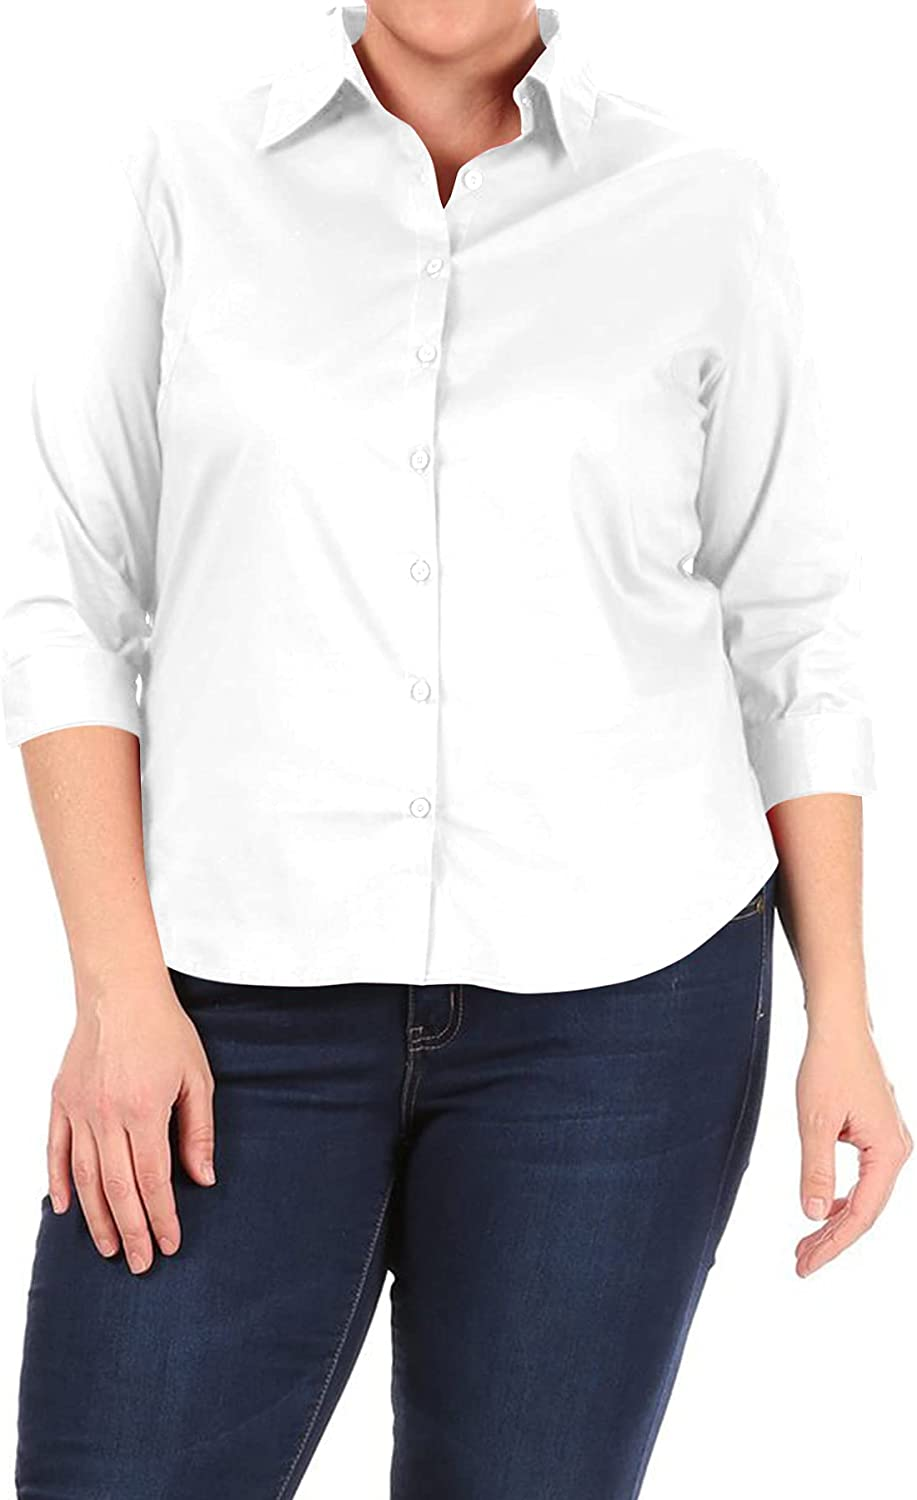 Women's Plus Size Casual Stretch 3/4 Sleeve Office Work Button Down Shirts Blouse Top